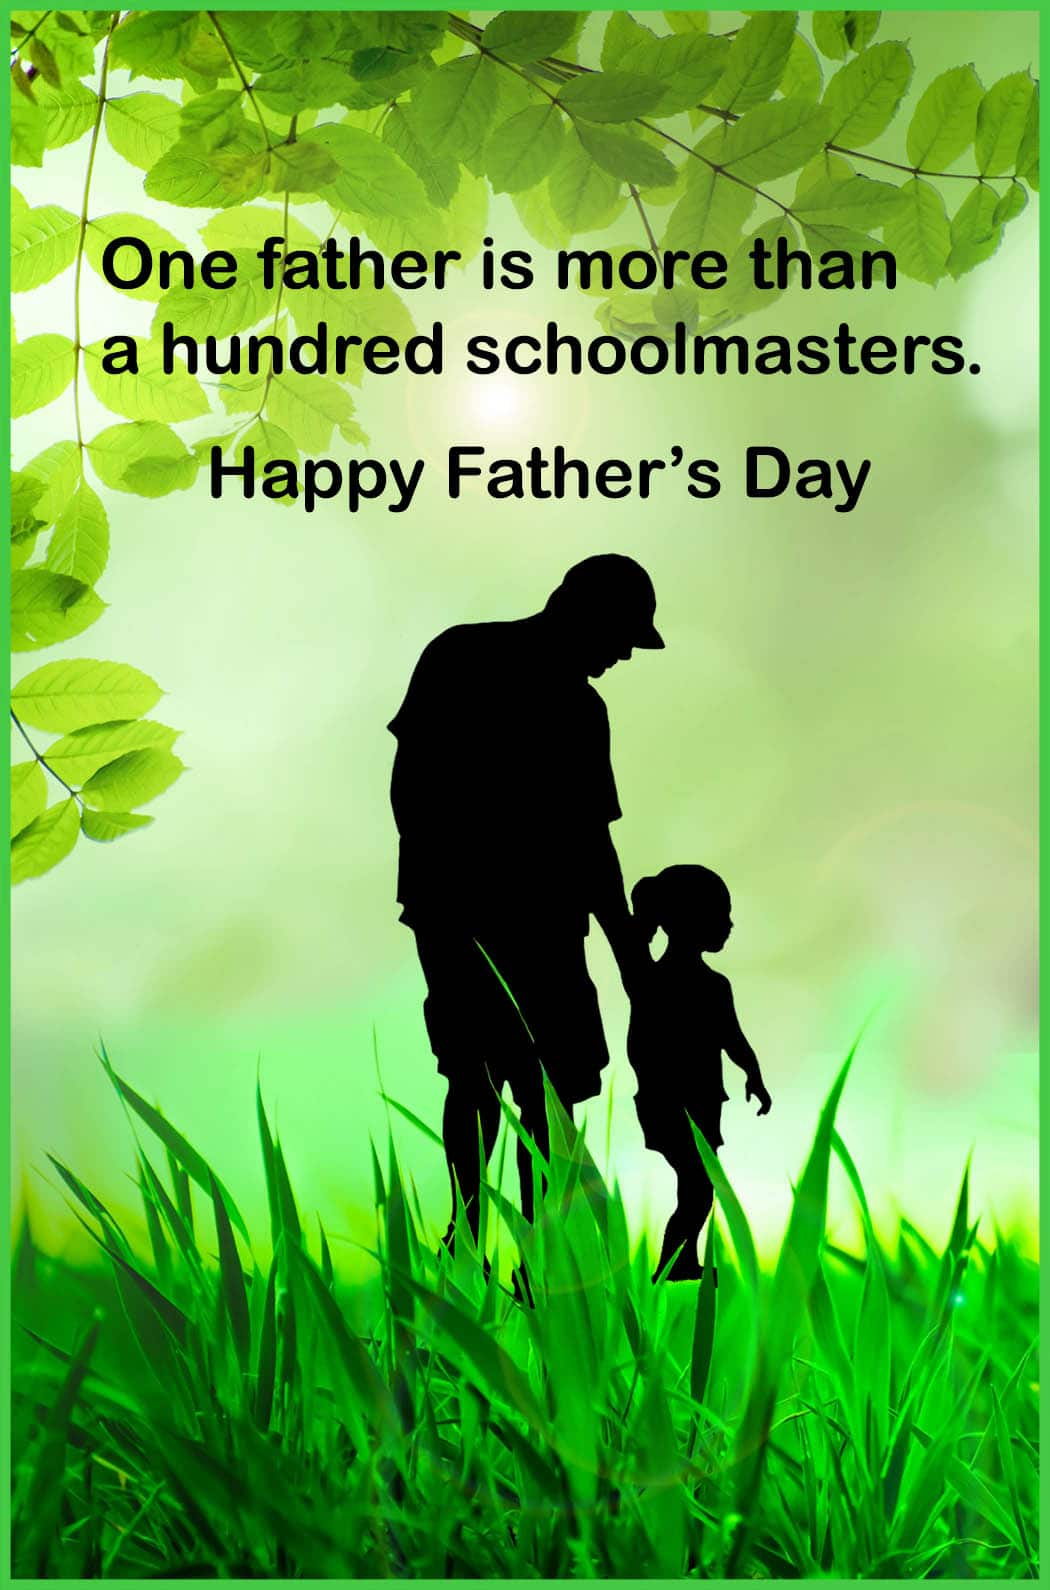 Fathers Day Greetings Card Message